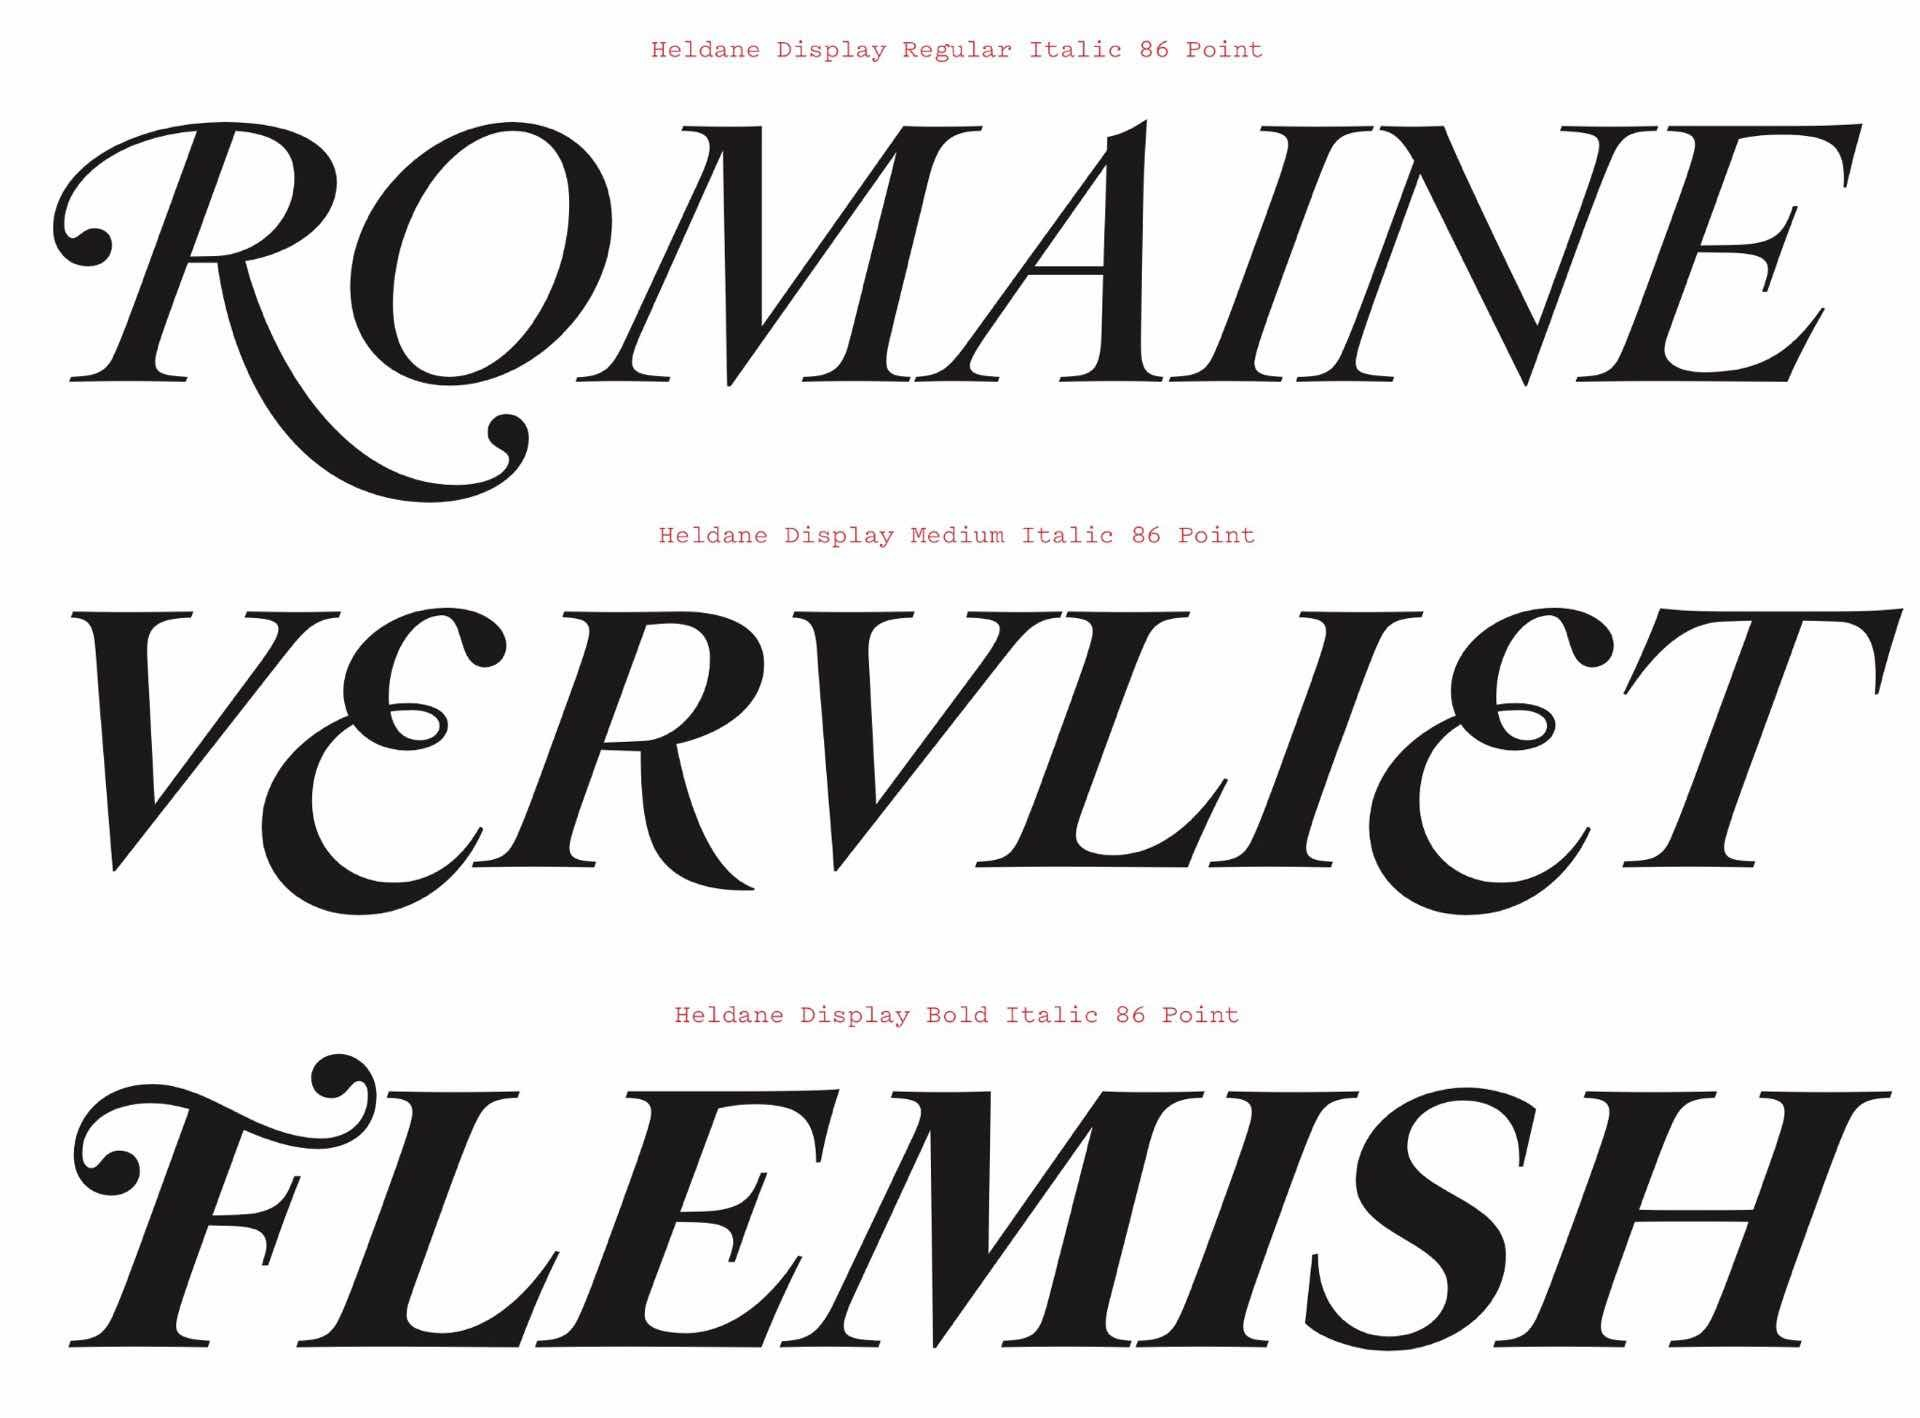 klim-type-foundry-heldane-display-and-heldane-text-font-families-italics